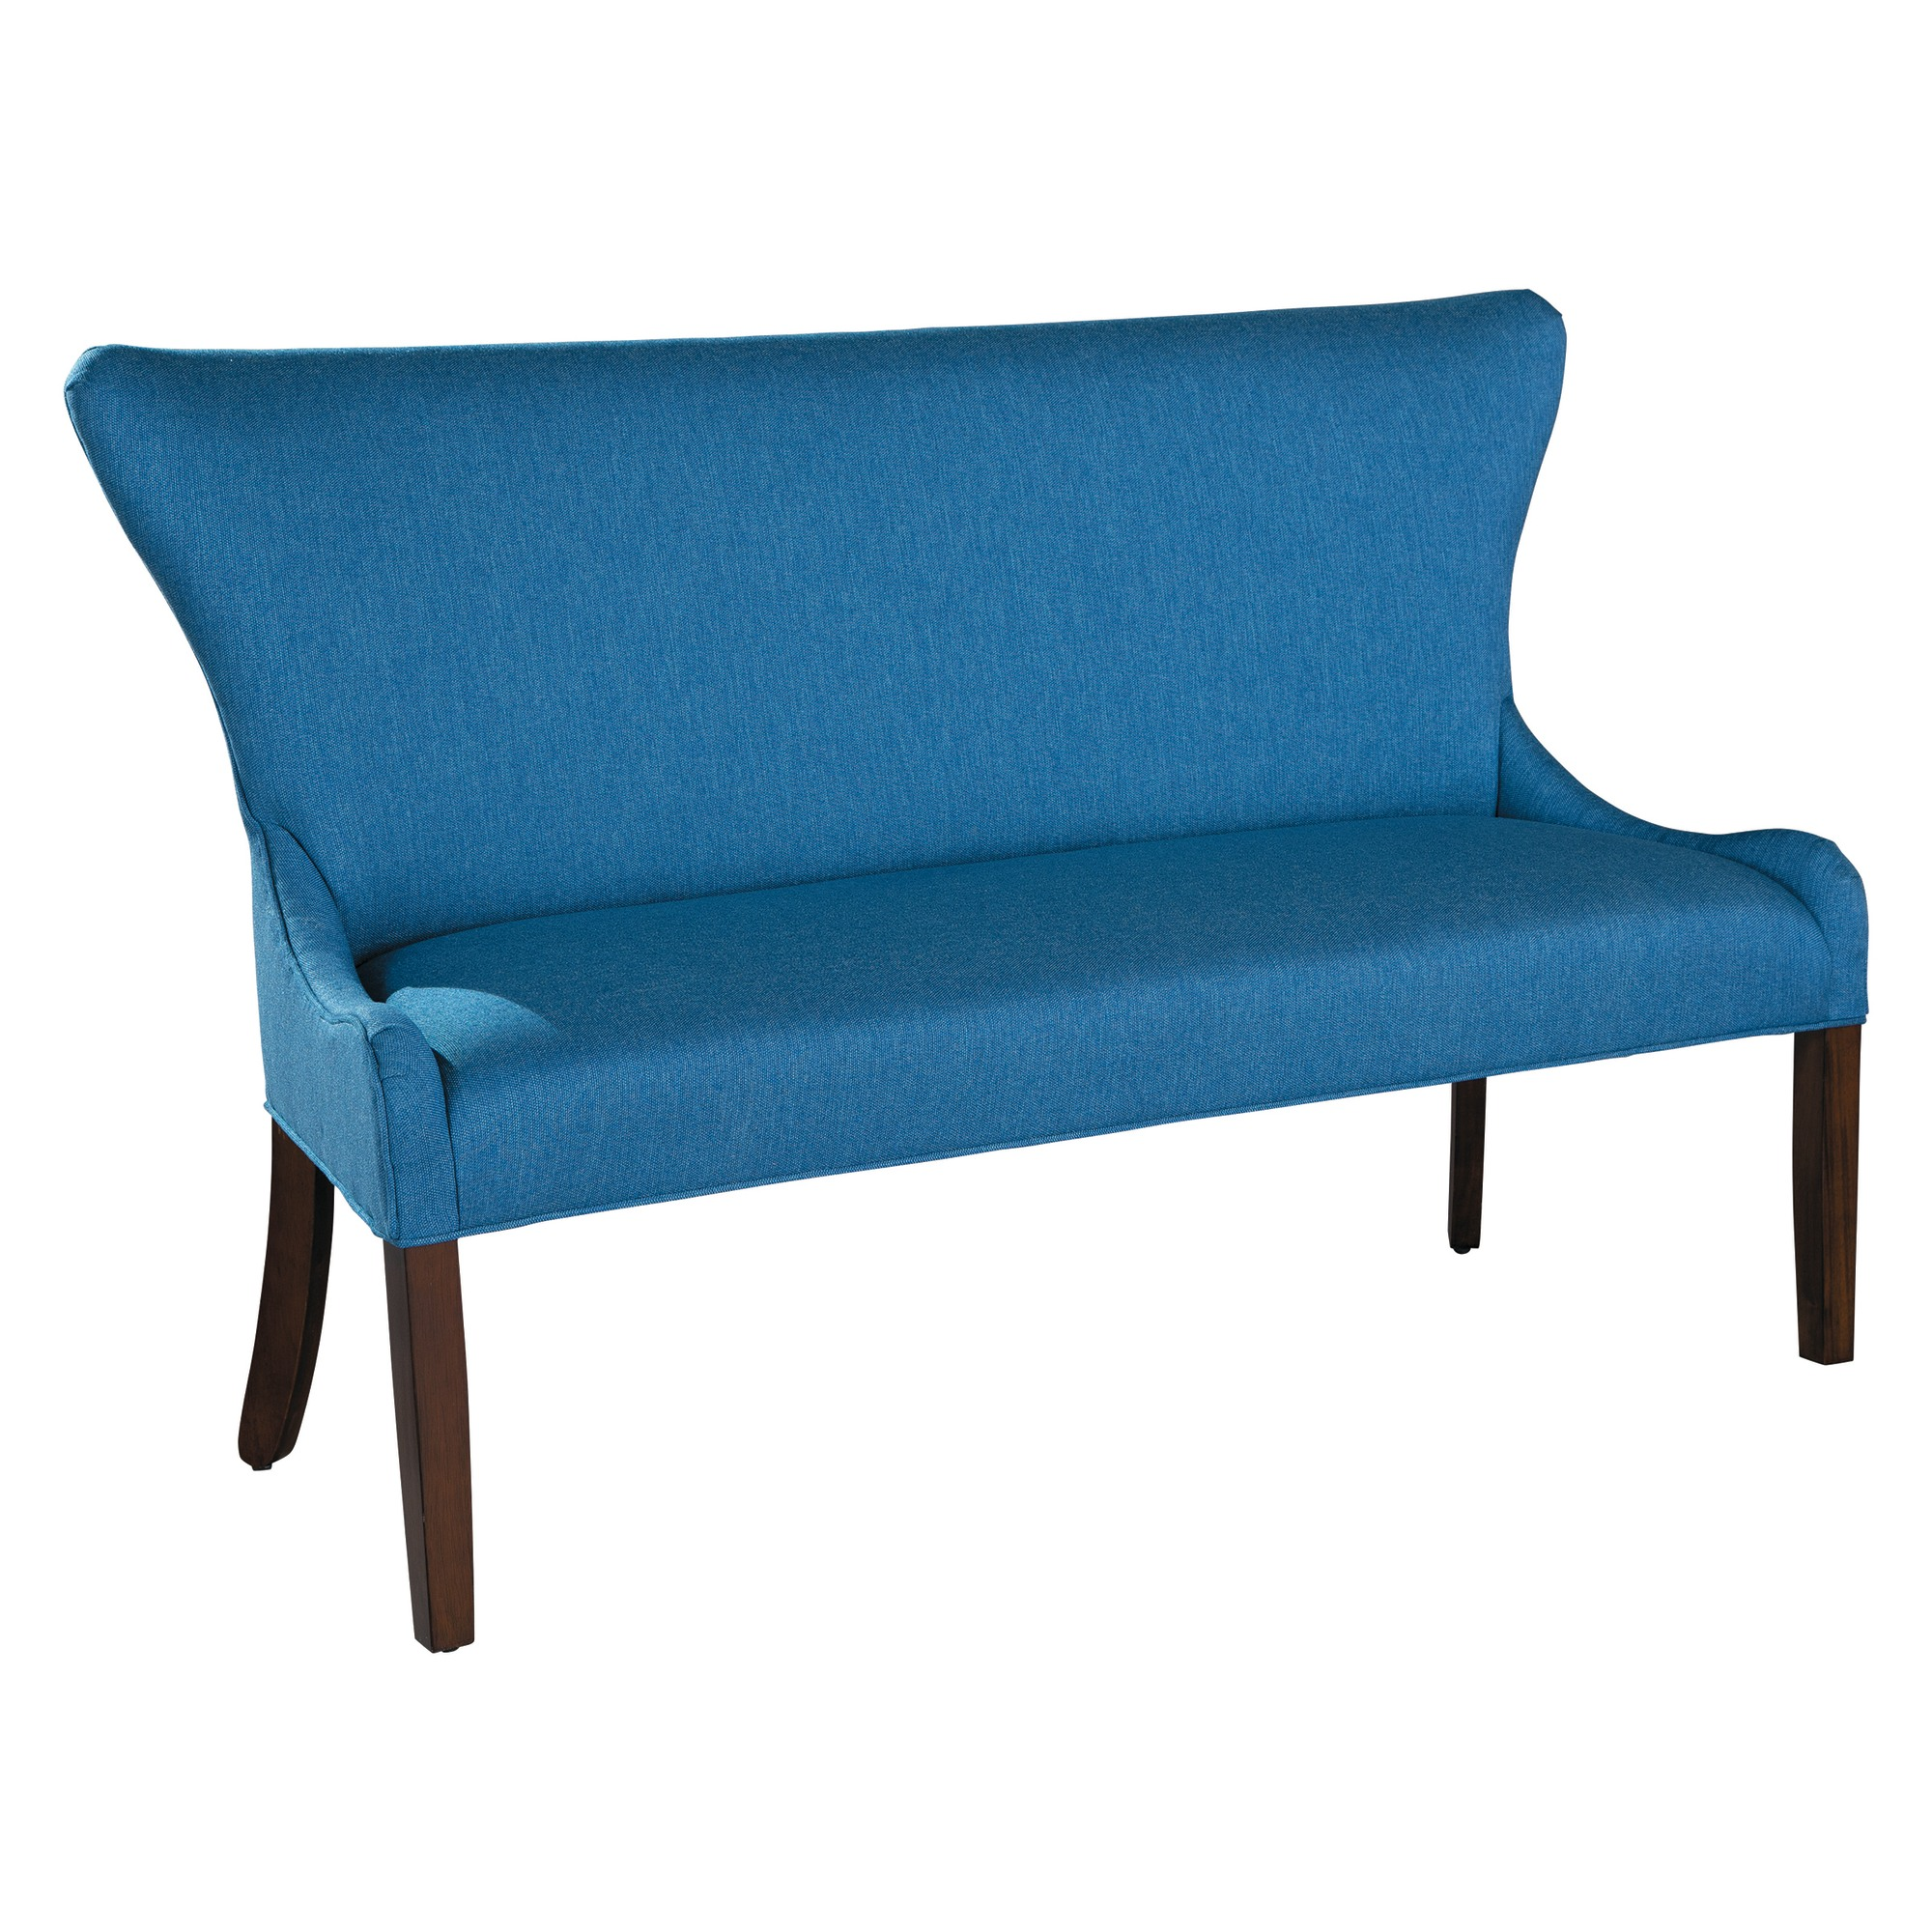 Image for 726865 Christine Settee from Hekman Official Website